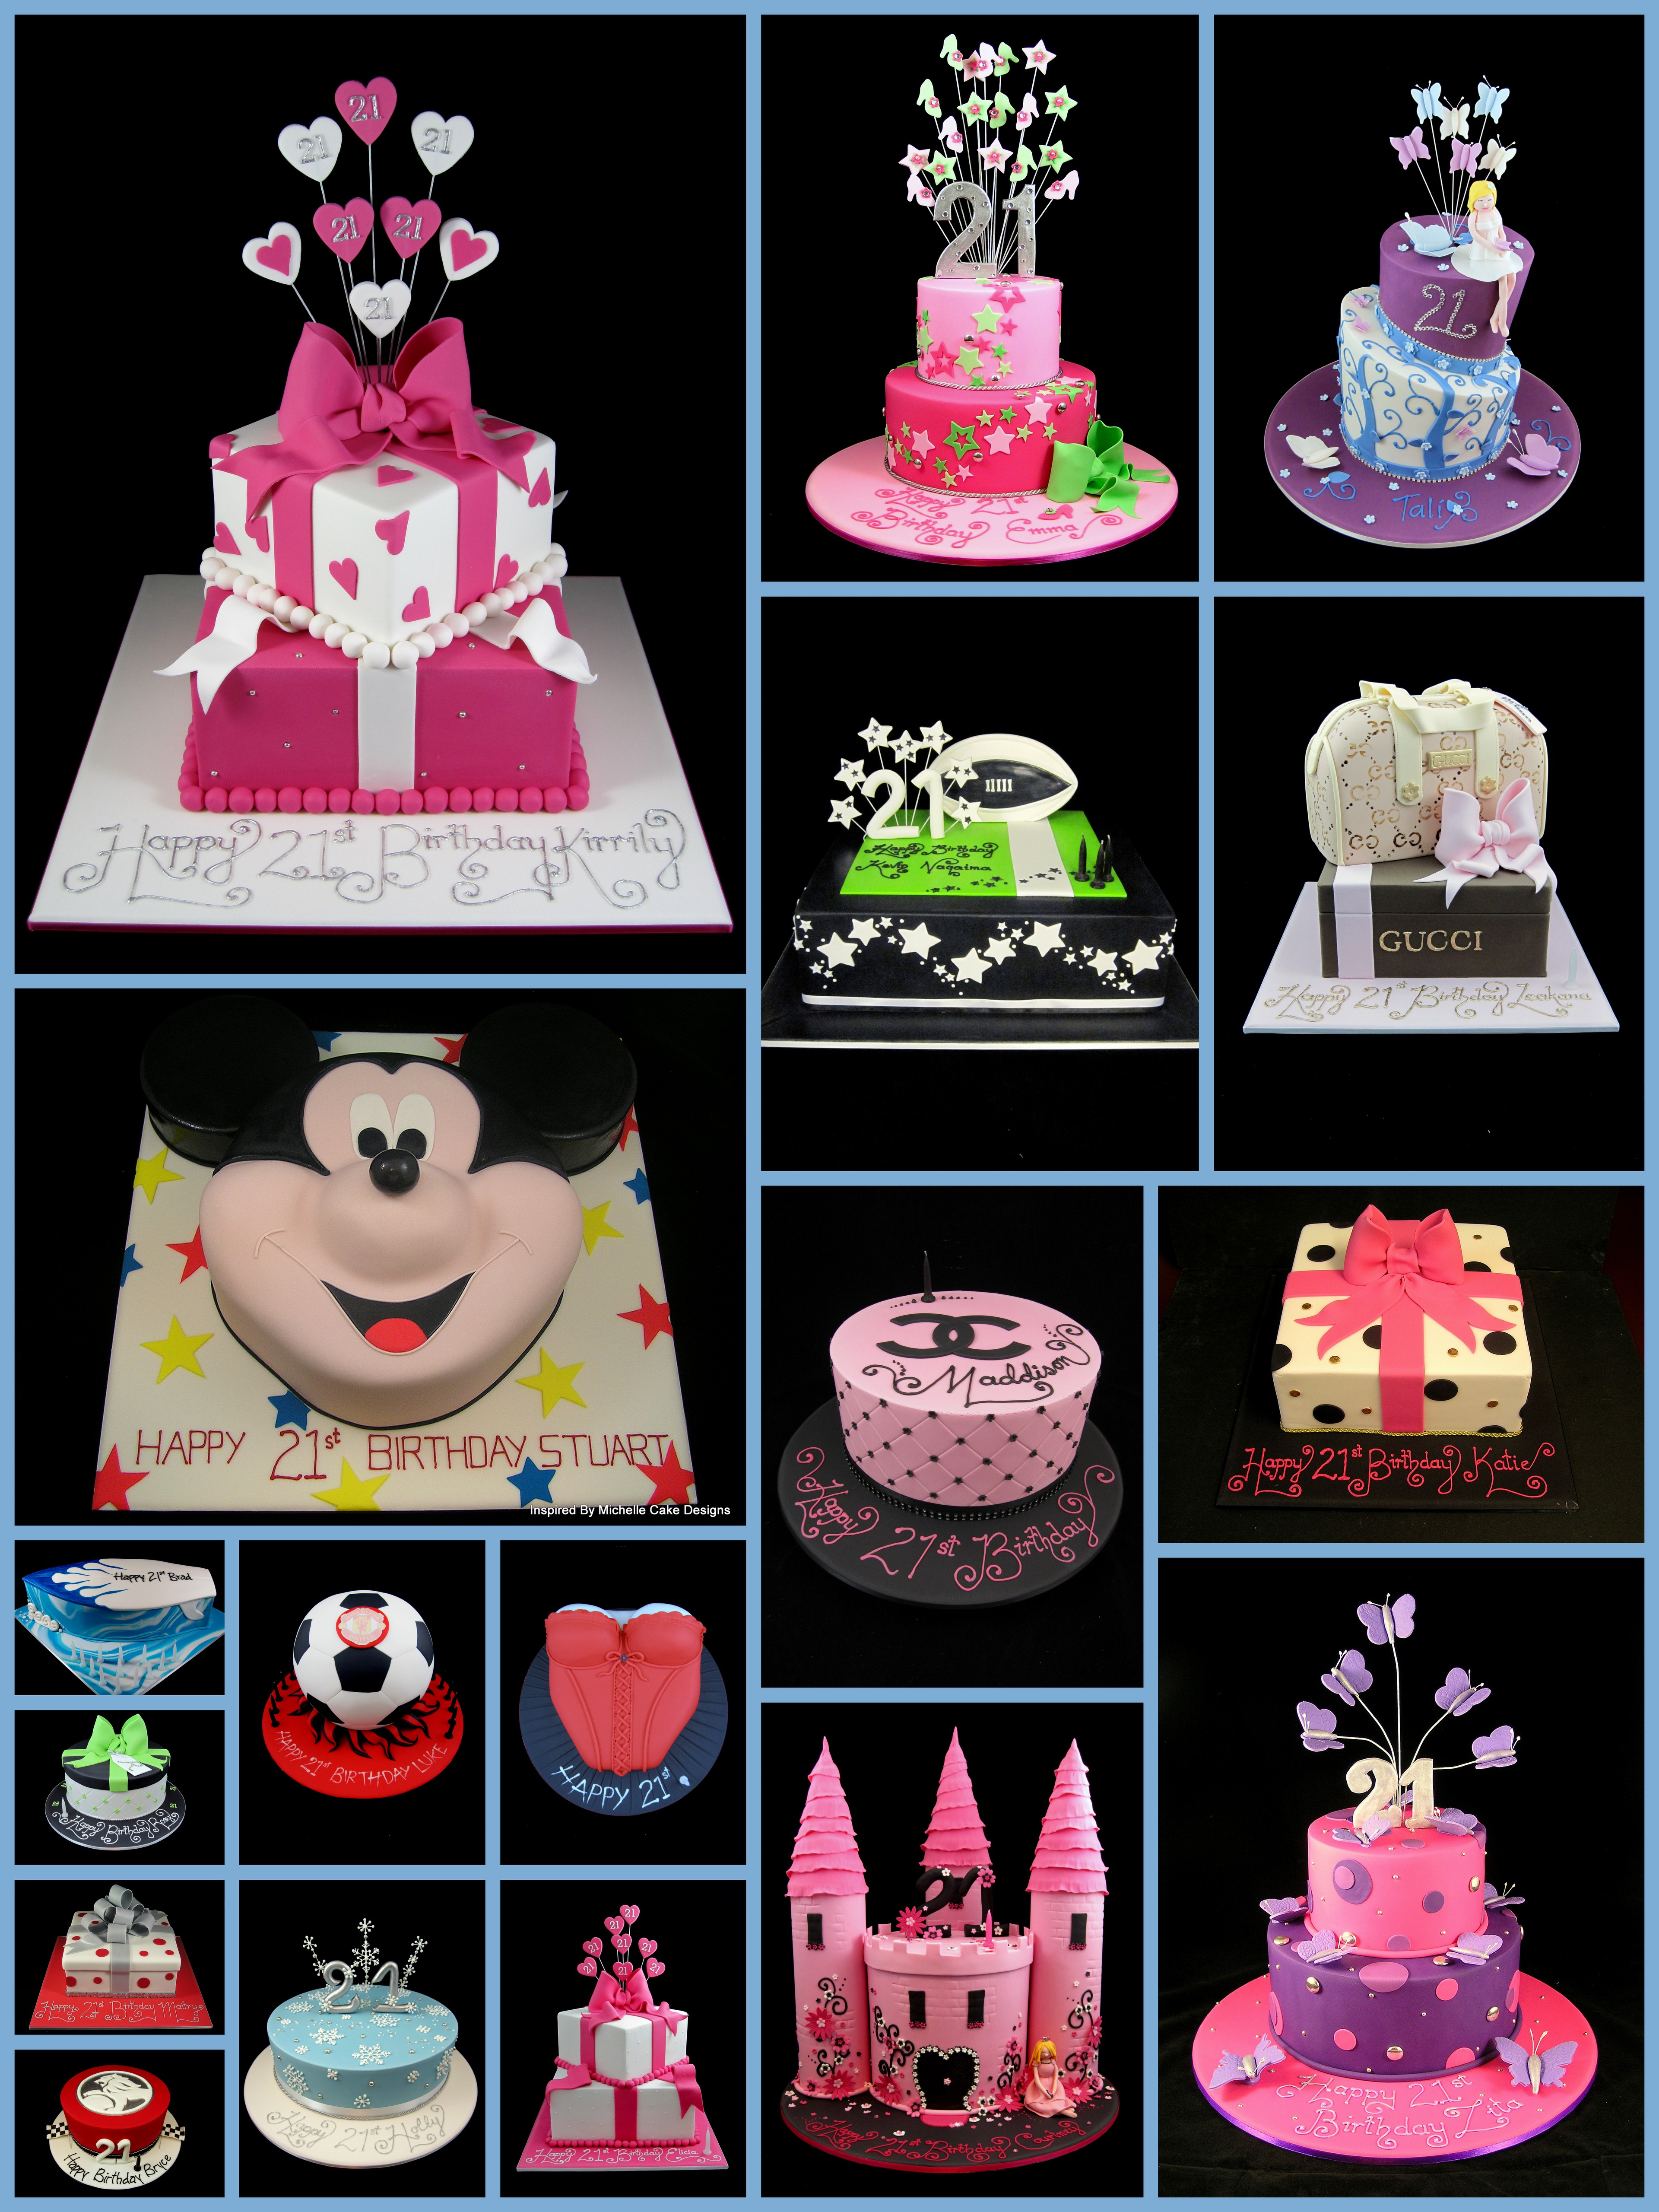 21st Birthday Cake Ideas For Girls And Boys Inspired By Michelle